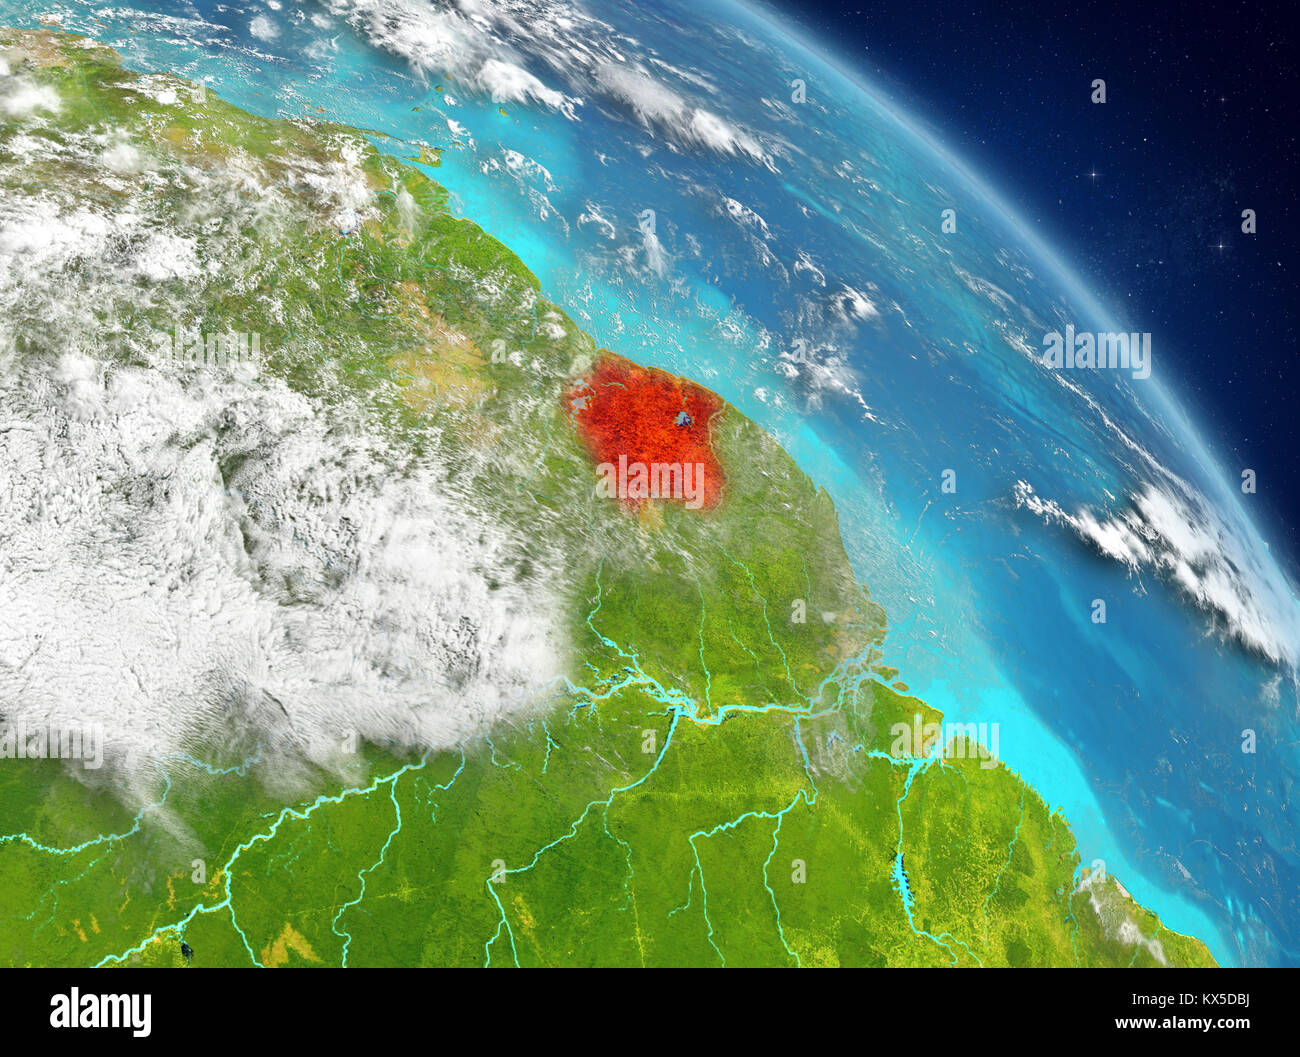 Illustration of Suriname as seen from Earth's orbit. 3D illustration. Elements of this image furnished by NASA. - Stock Image